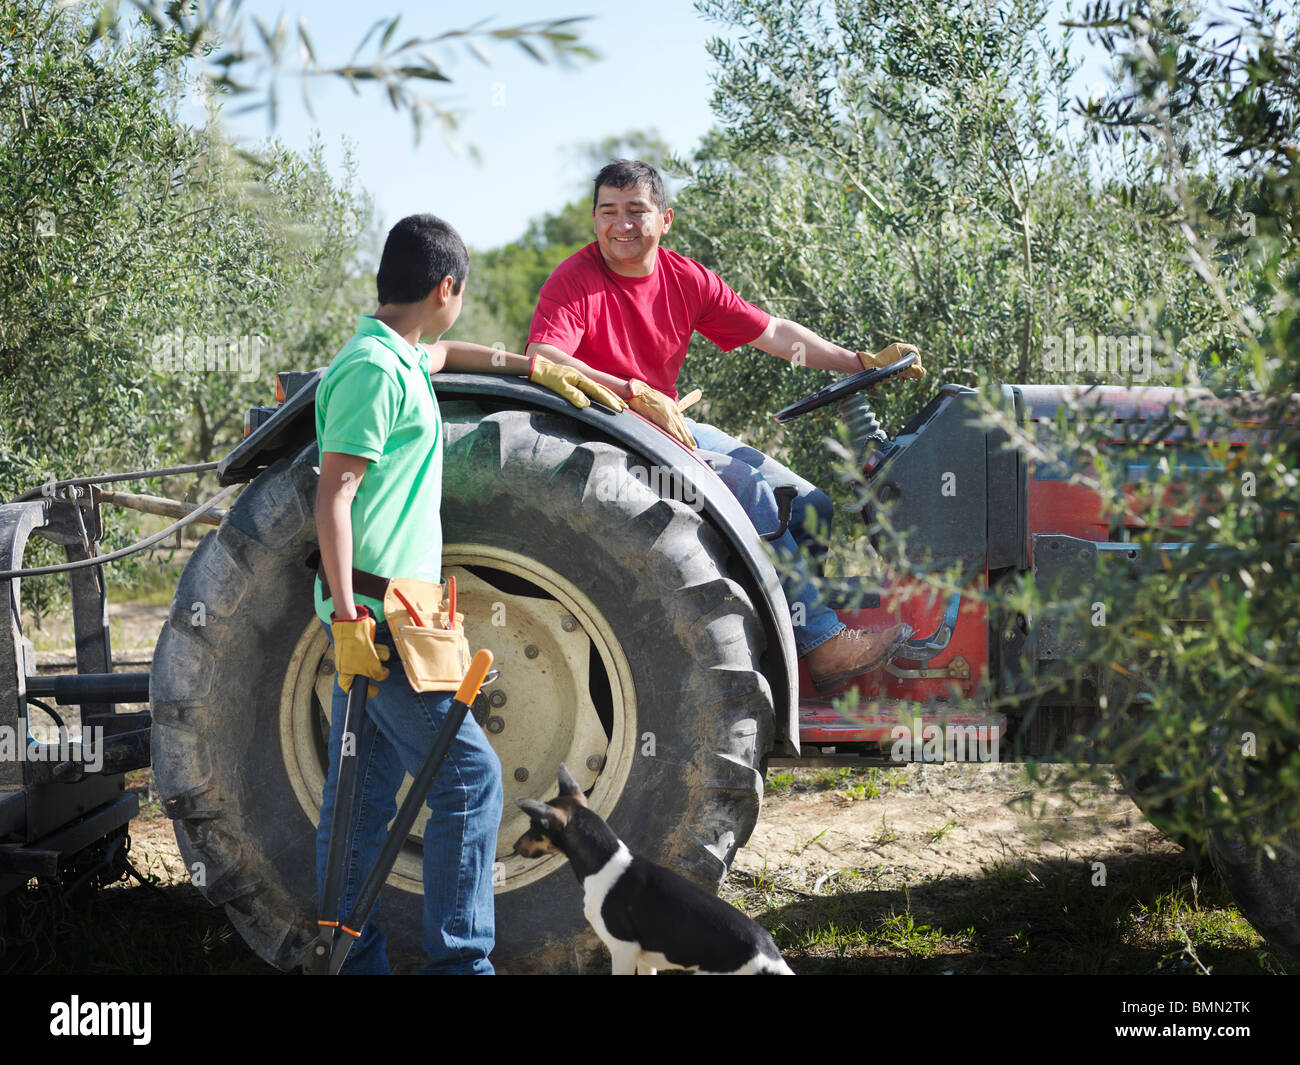 Father and son with tractor - Stock Image